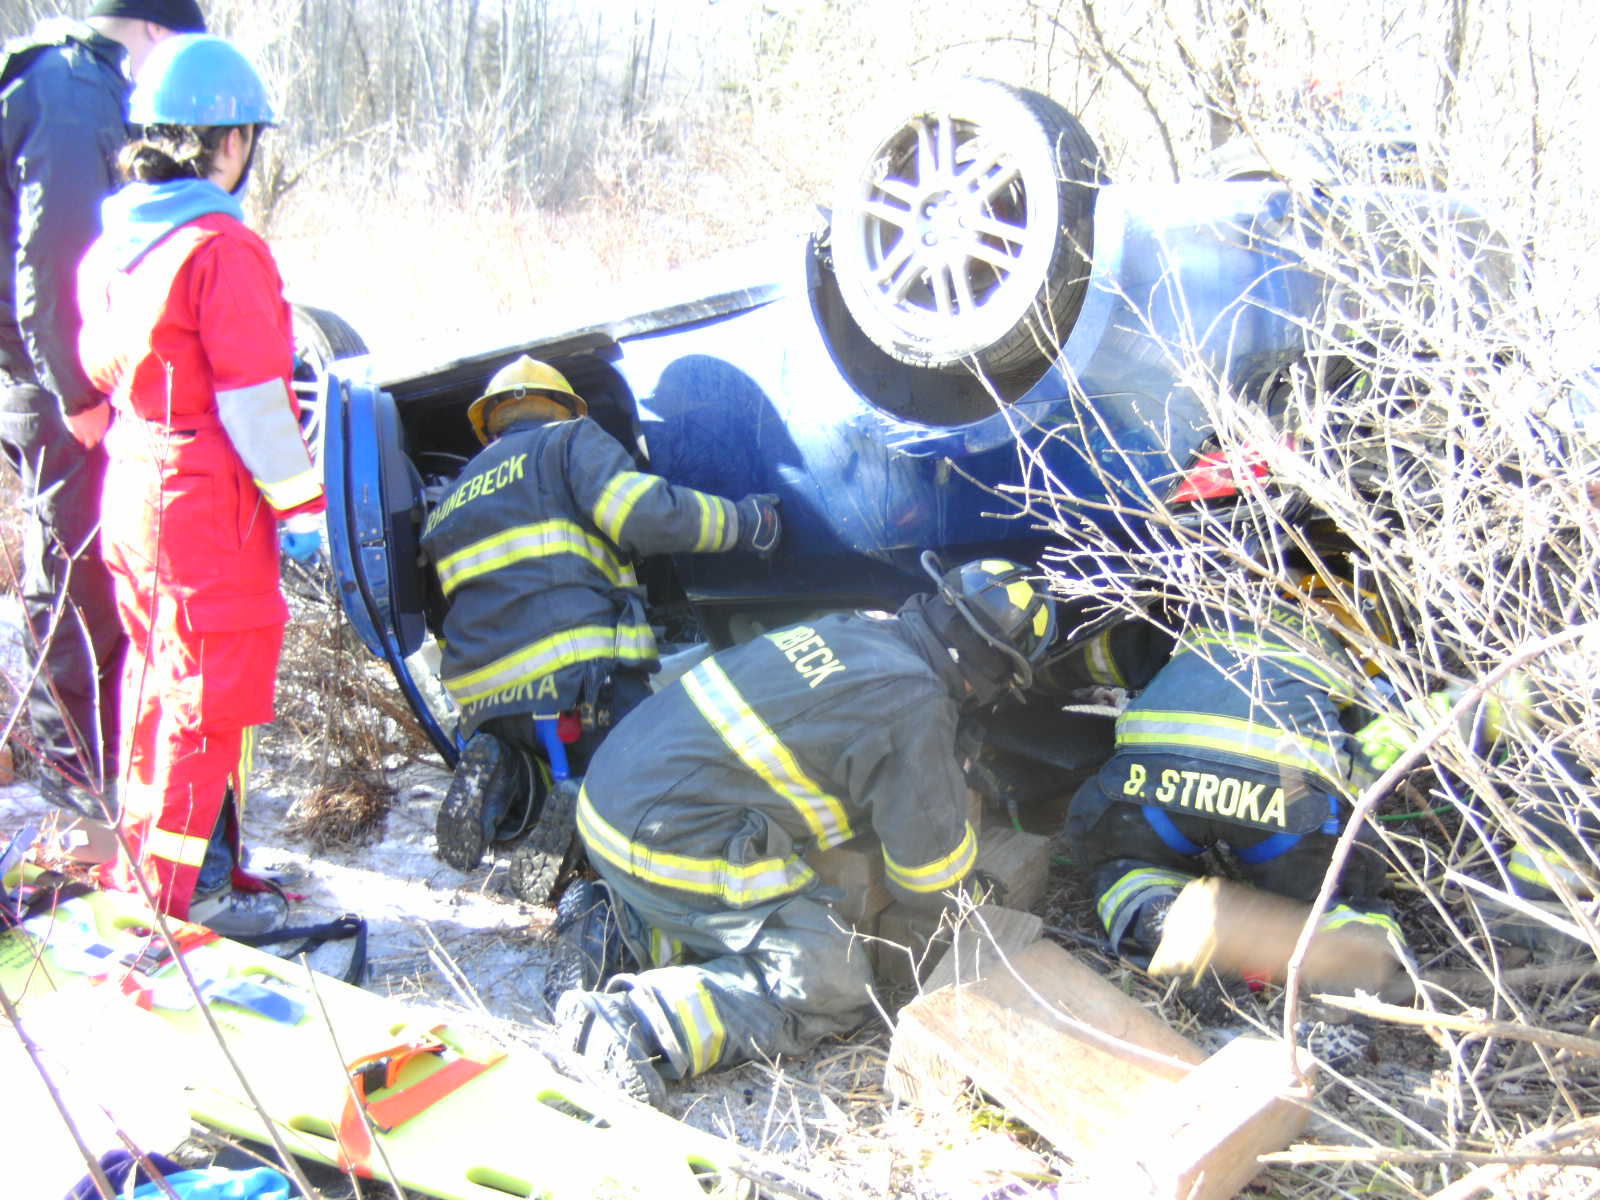 Emergency personnel work to free Nicole Arruda from her vehicle after it overturned off Slate Quarry Road.